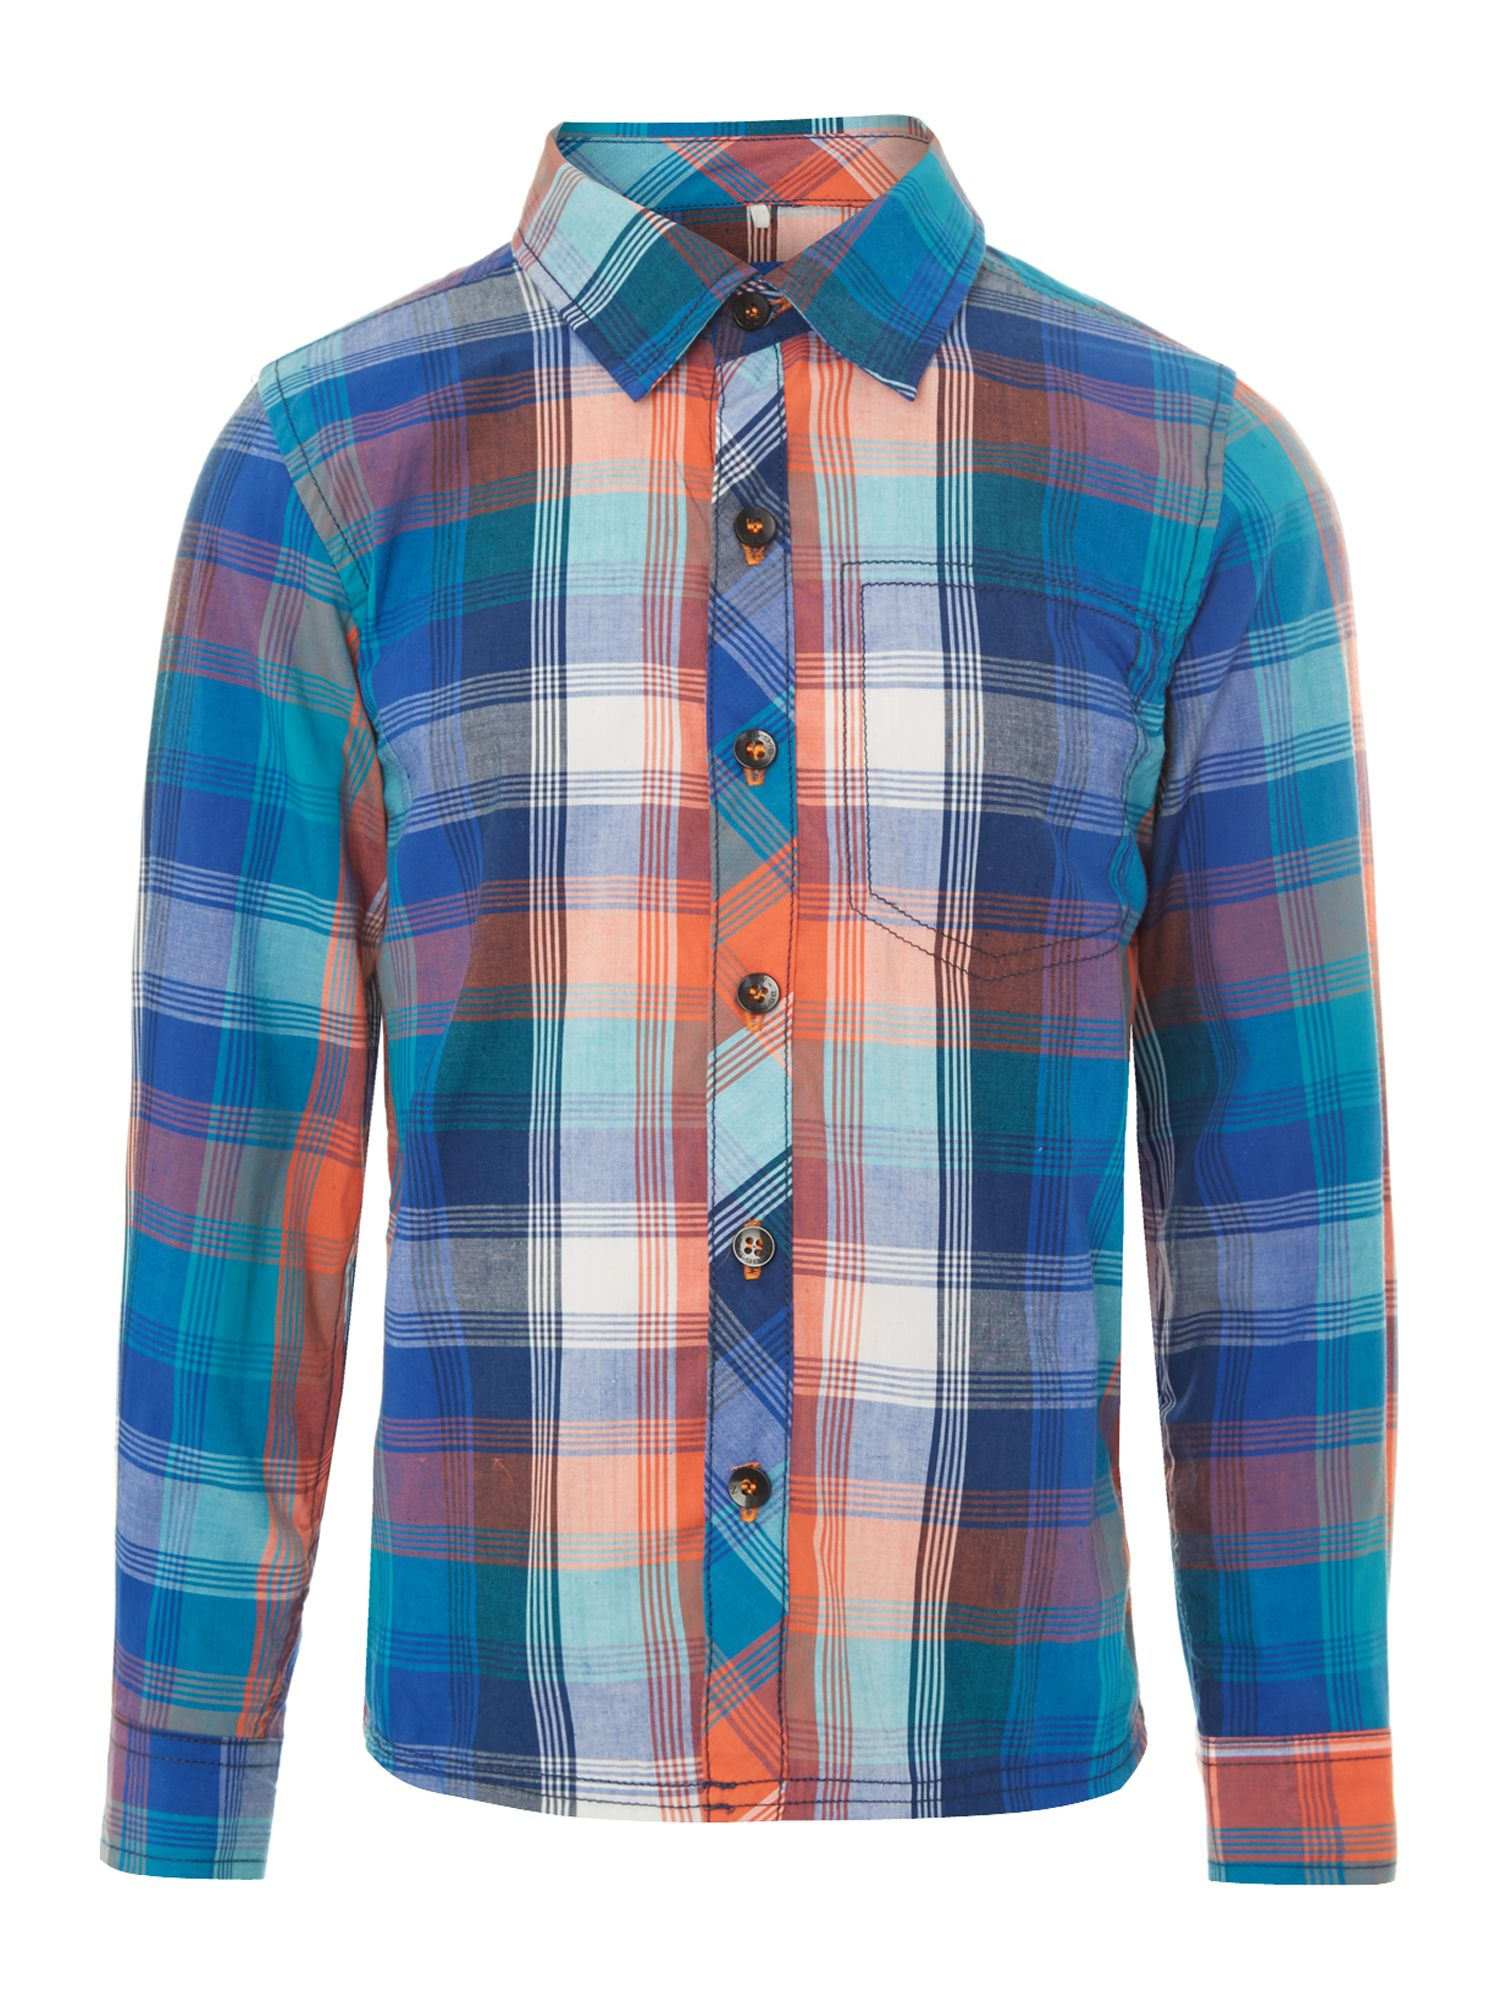 Boys large pocket check shirt